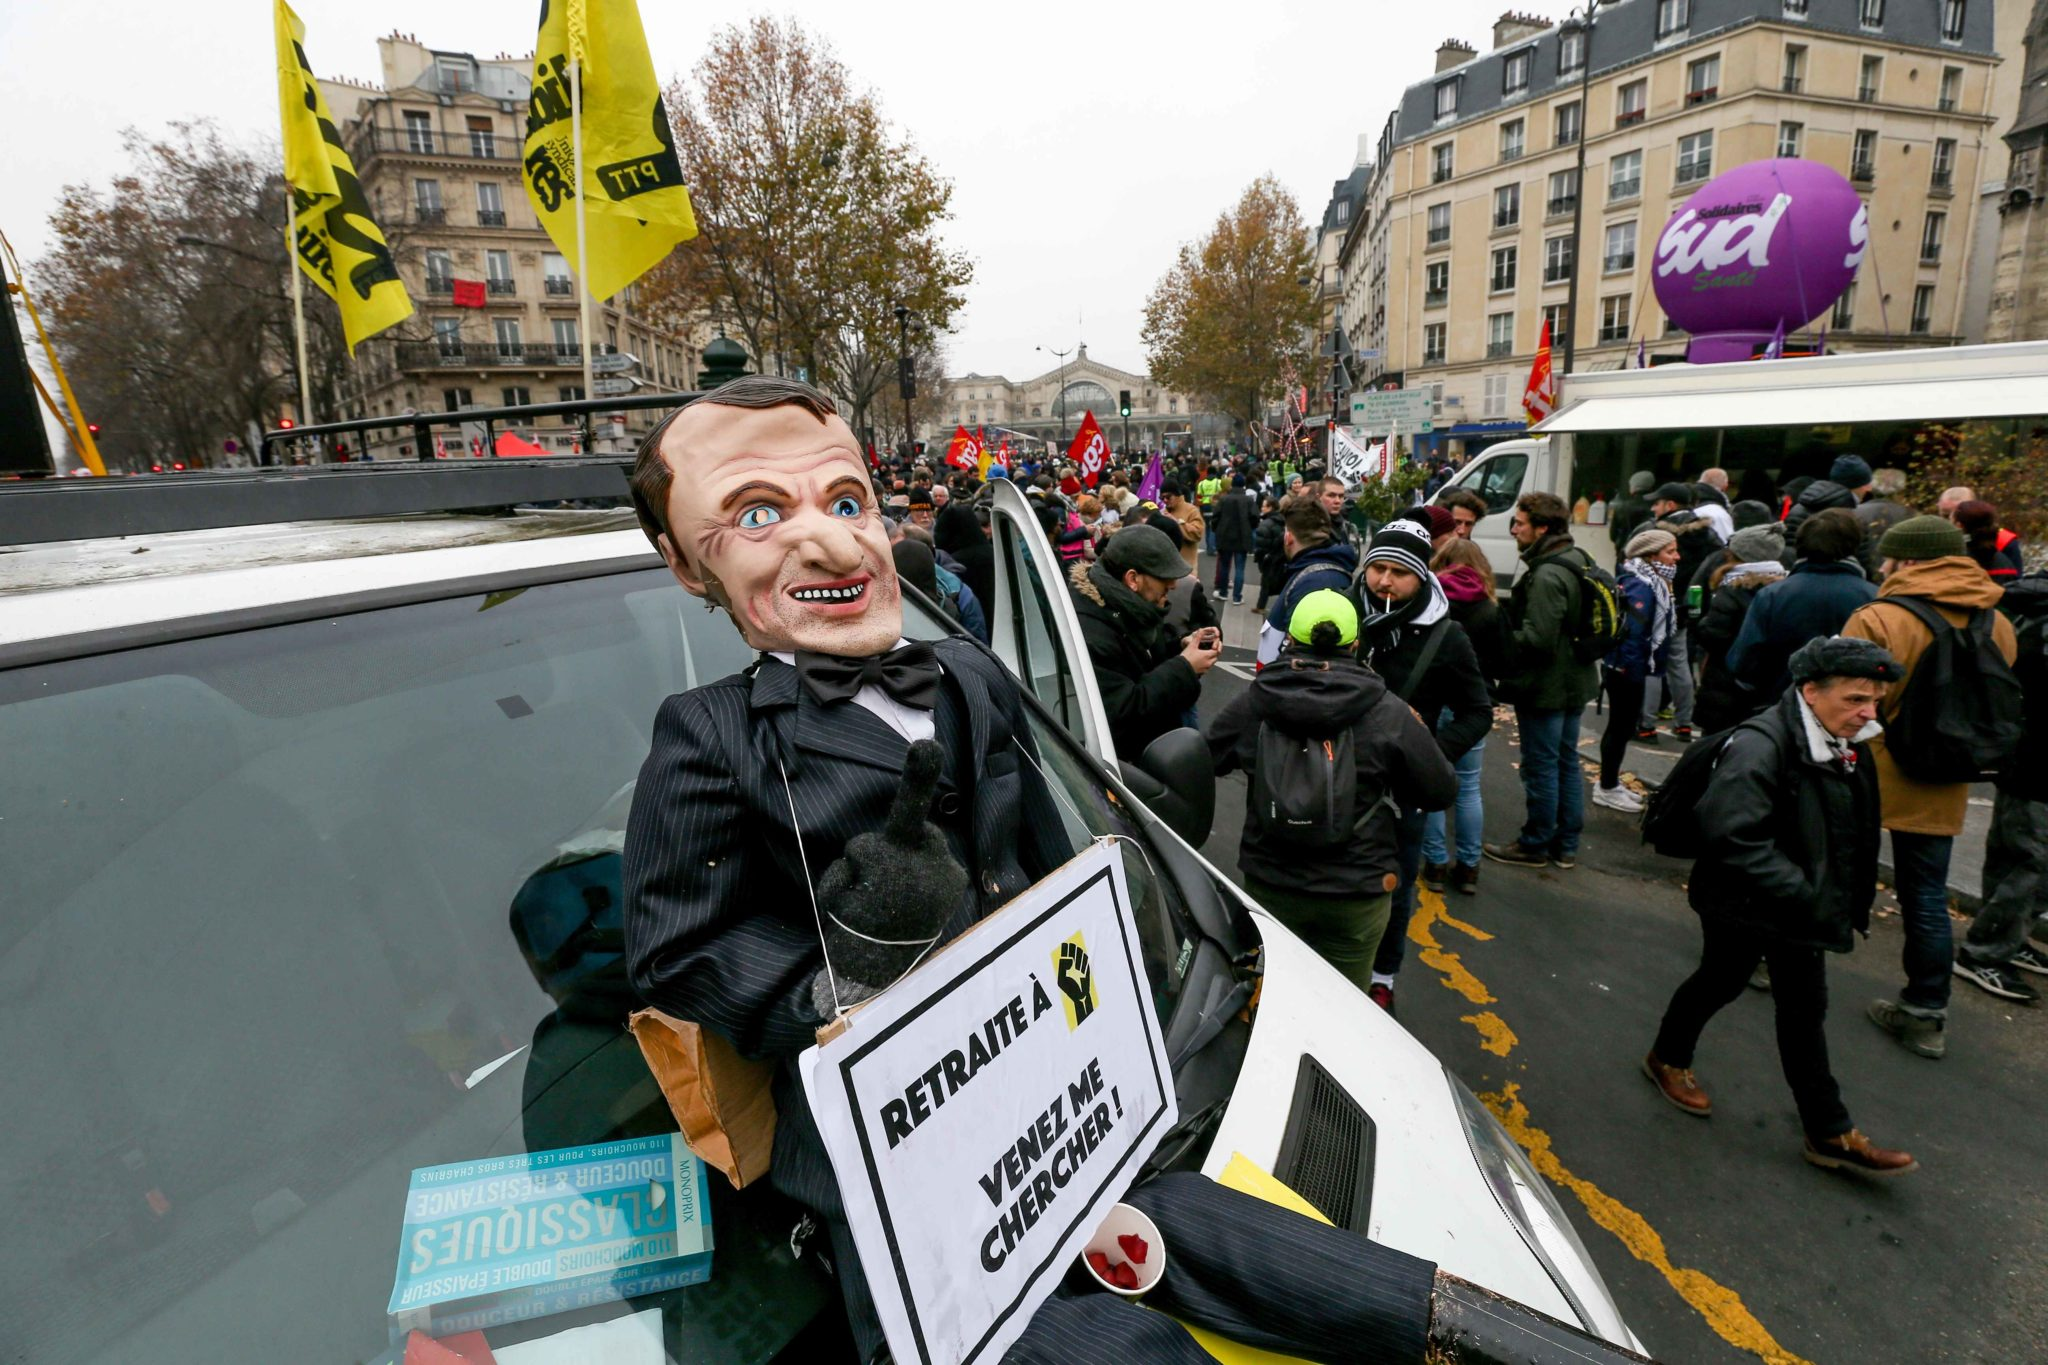 A puppet giving the finger and representing the French President Emmanuel Macron wit the inscription « Come get me » is diplayed during a demontration to protest against the pension overhauls, in Paris, on December 5, 2019 as part of a national general s